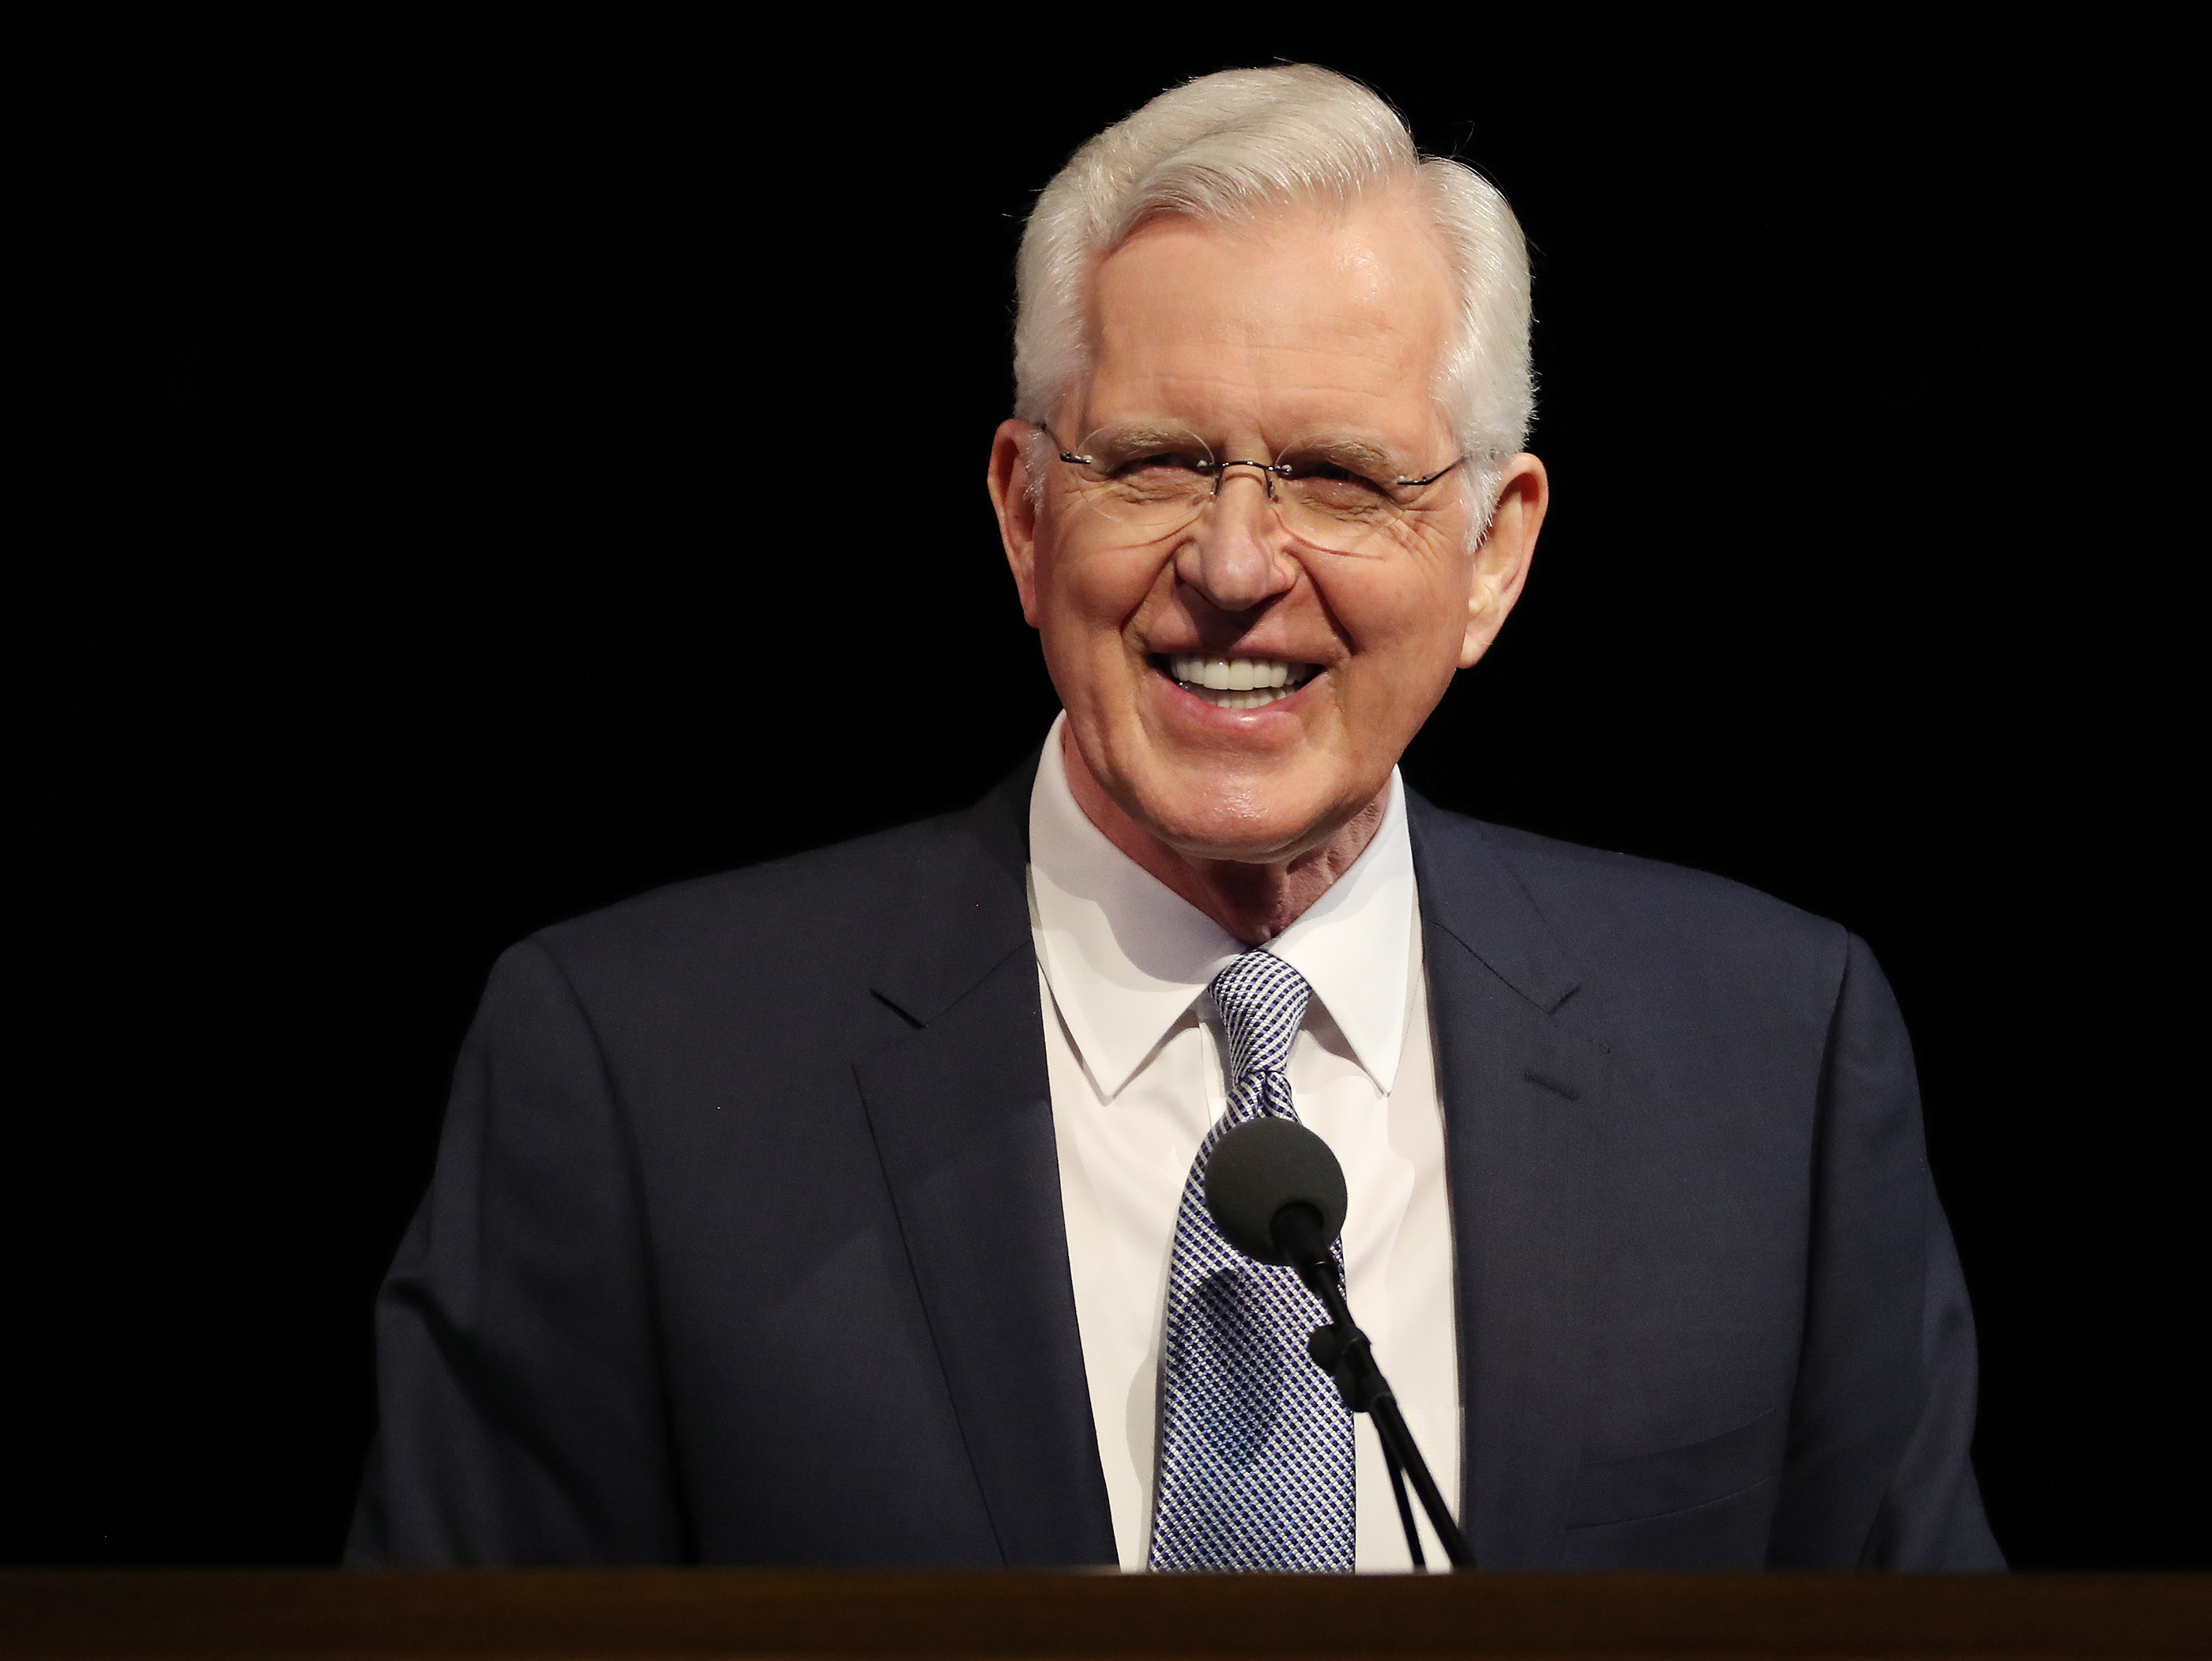 Elder D. Todd Christofferson of the Quorum of the Twelve Apostles for The Church of Jesus Christ of Latter-day Saints speaks during BYU Women's Conference in Provo on Friday, May 3, 2019.